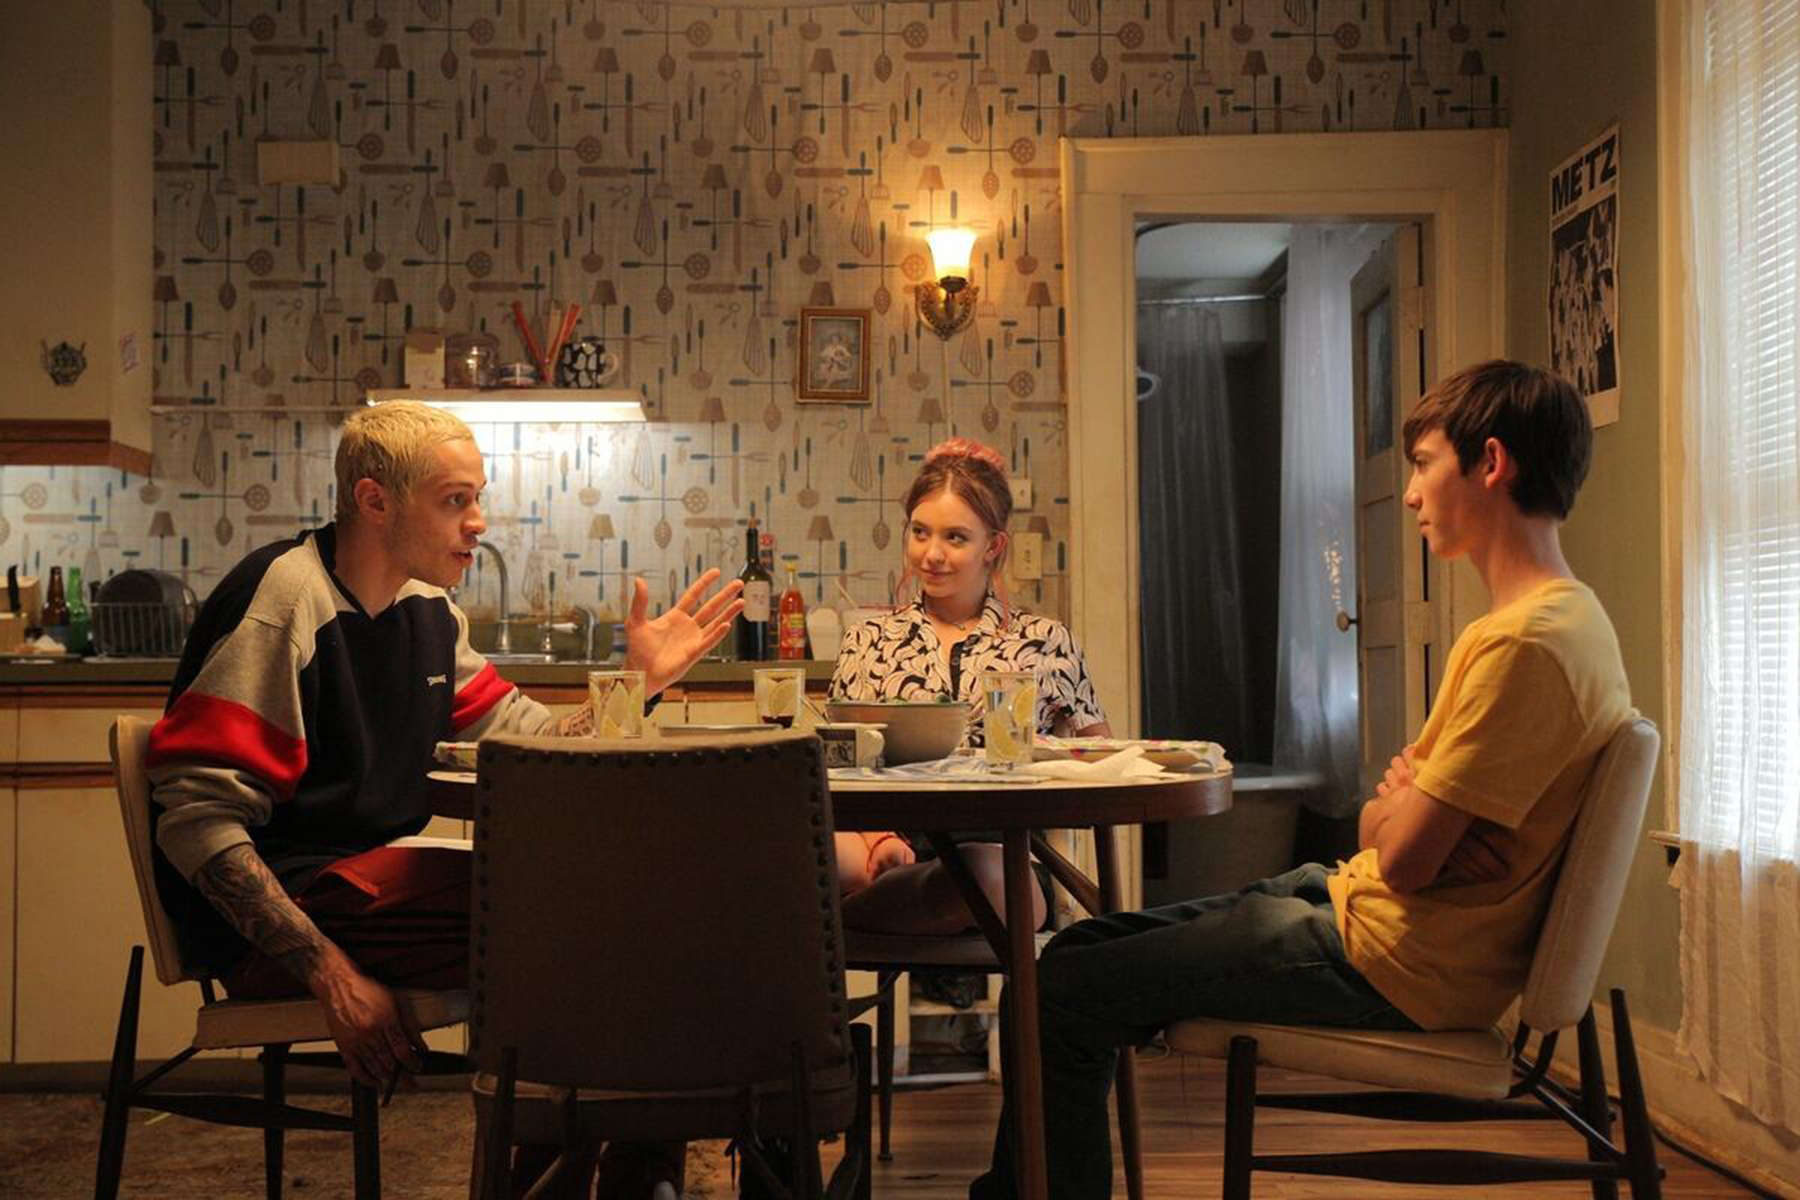 Zeke (Davidson), Holly (Sweeney), and Monroe (Gluck) have a chat during a feel-good dinner.